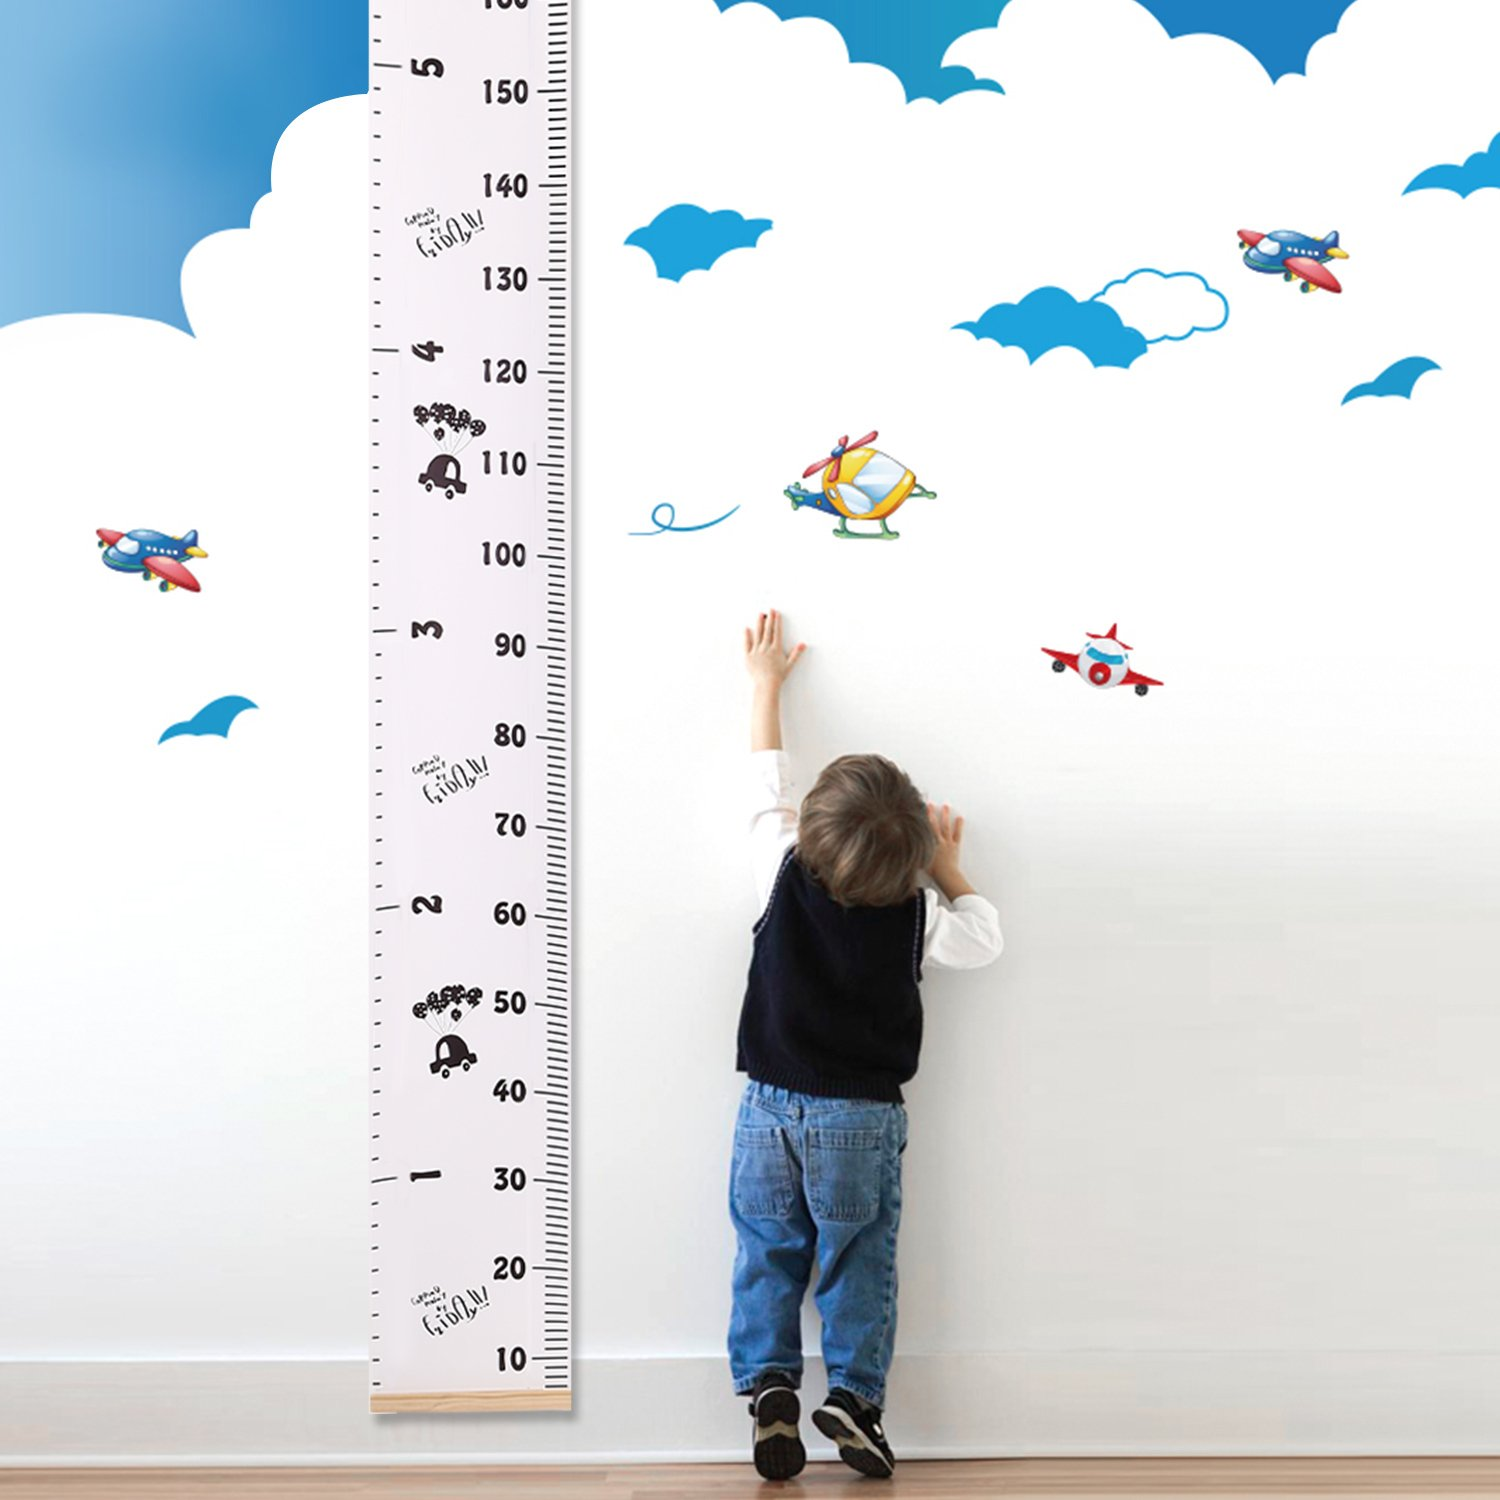 UTOVME Baby Kids Height Growth Chart Hanging Rulers, Wood Frame Canvas Cartoon Cars Printing Growth Ruler Room Wall Decor, 76.4 x 7.9 76.4 x 7.9 D101FT159-CR02